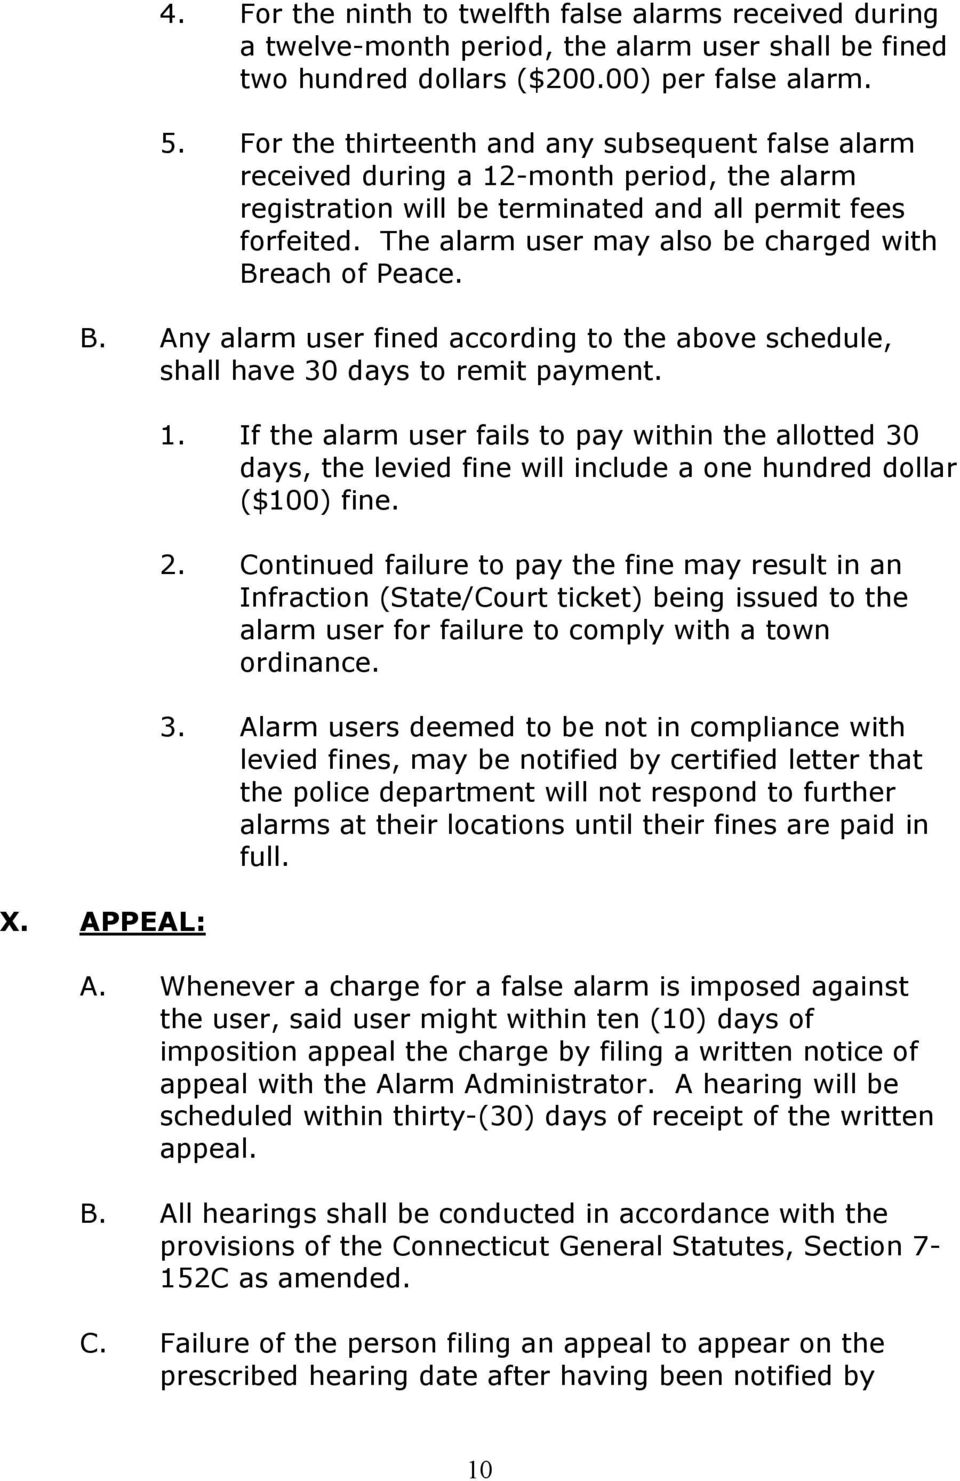 The alarm user may also be charged with Breach of Peace. B. Any alarm user fined according to the above schedule, shall have 30 days to remit payment. X. APPEAL: 1.